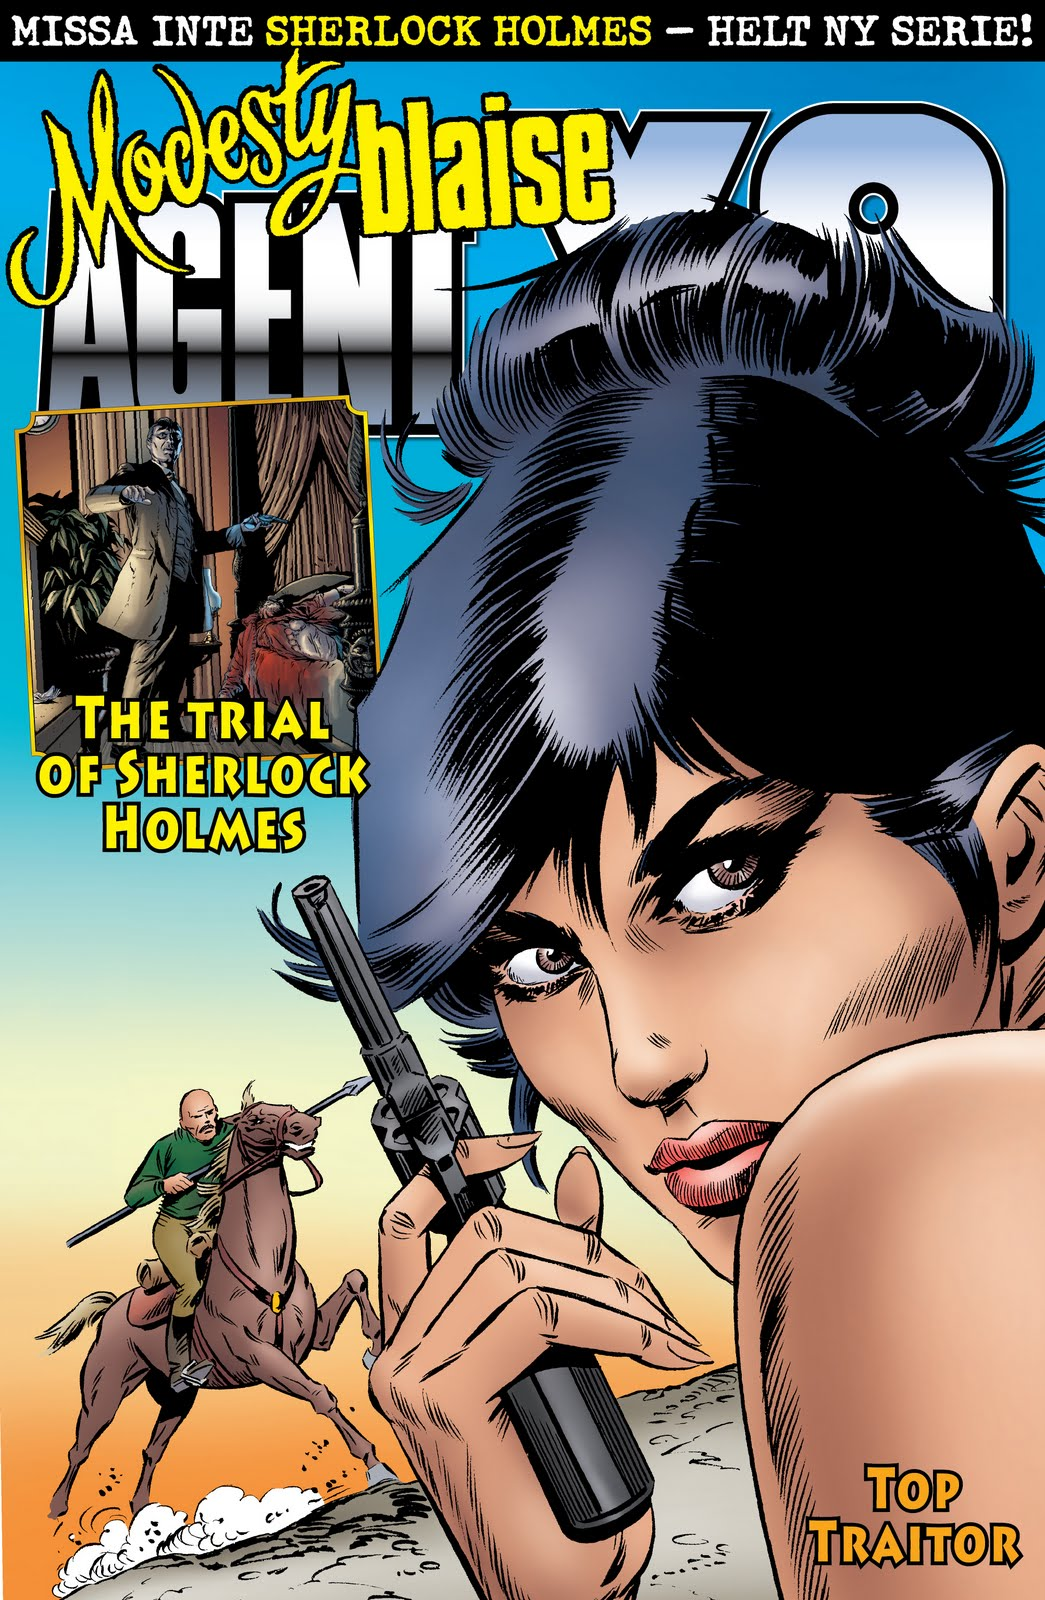 Modesty Blaise C1_xni00110_Cover_Top_Traitor